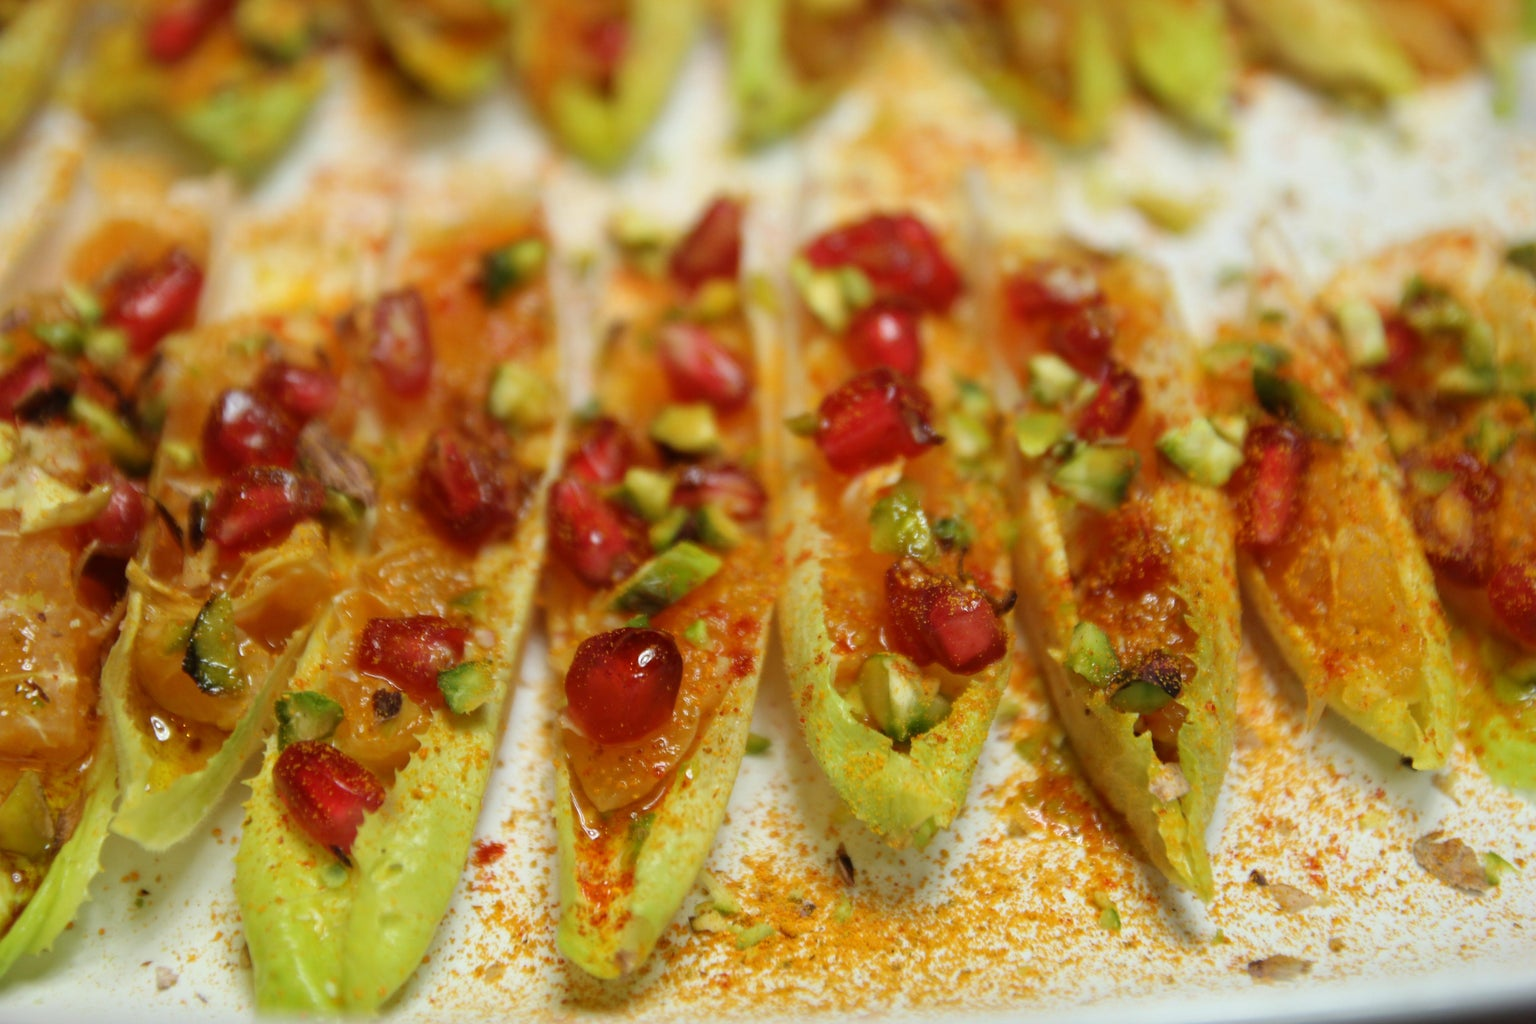 Belgian Endive Barges With Cargoes of Red Gold Tunisian Salad.